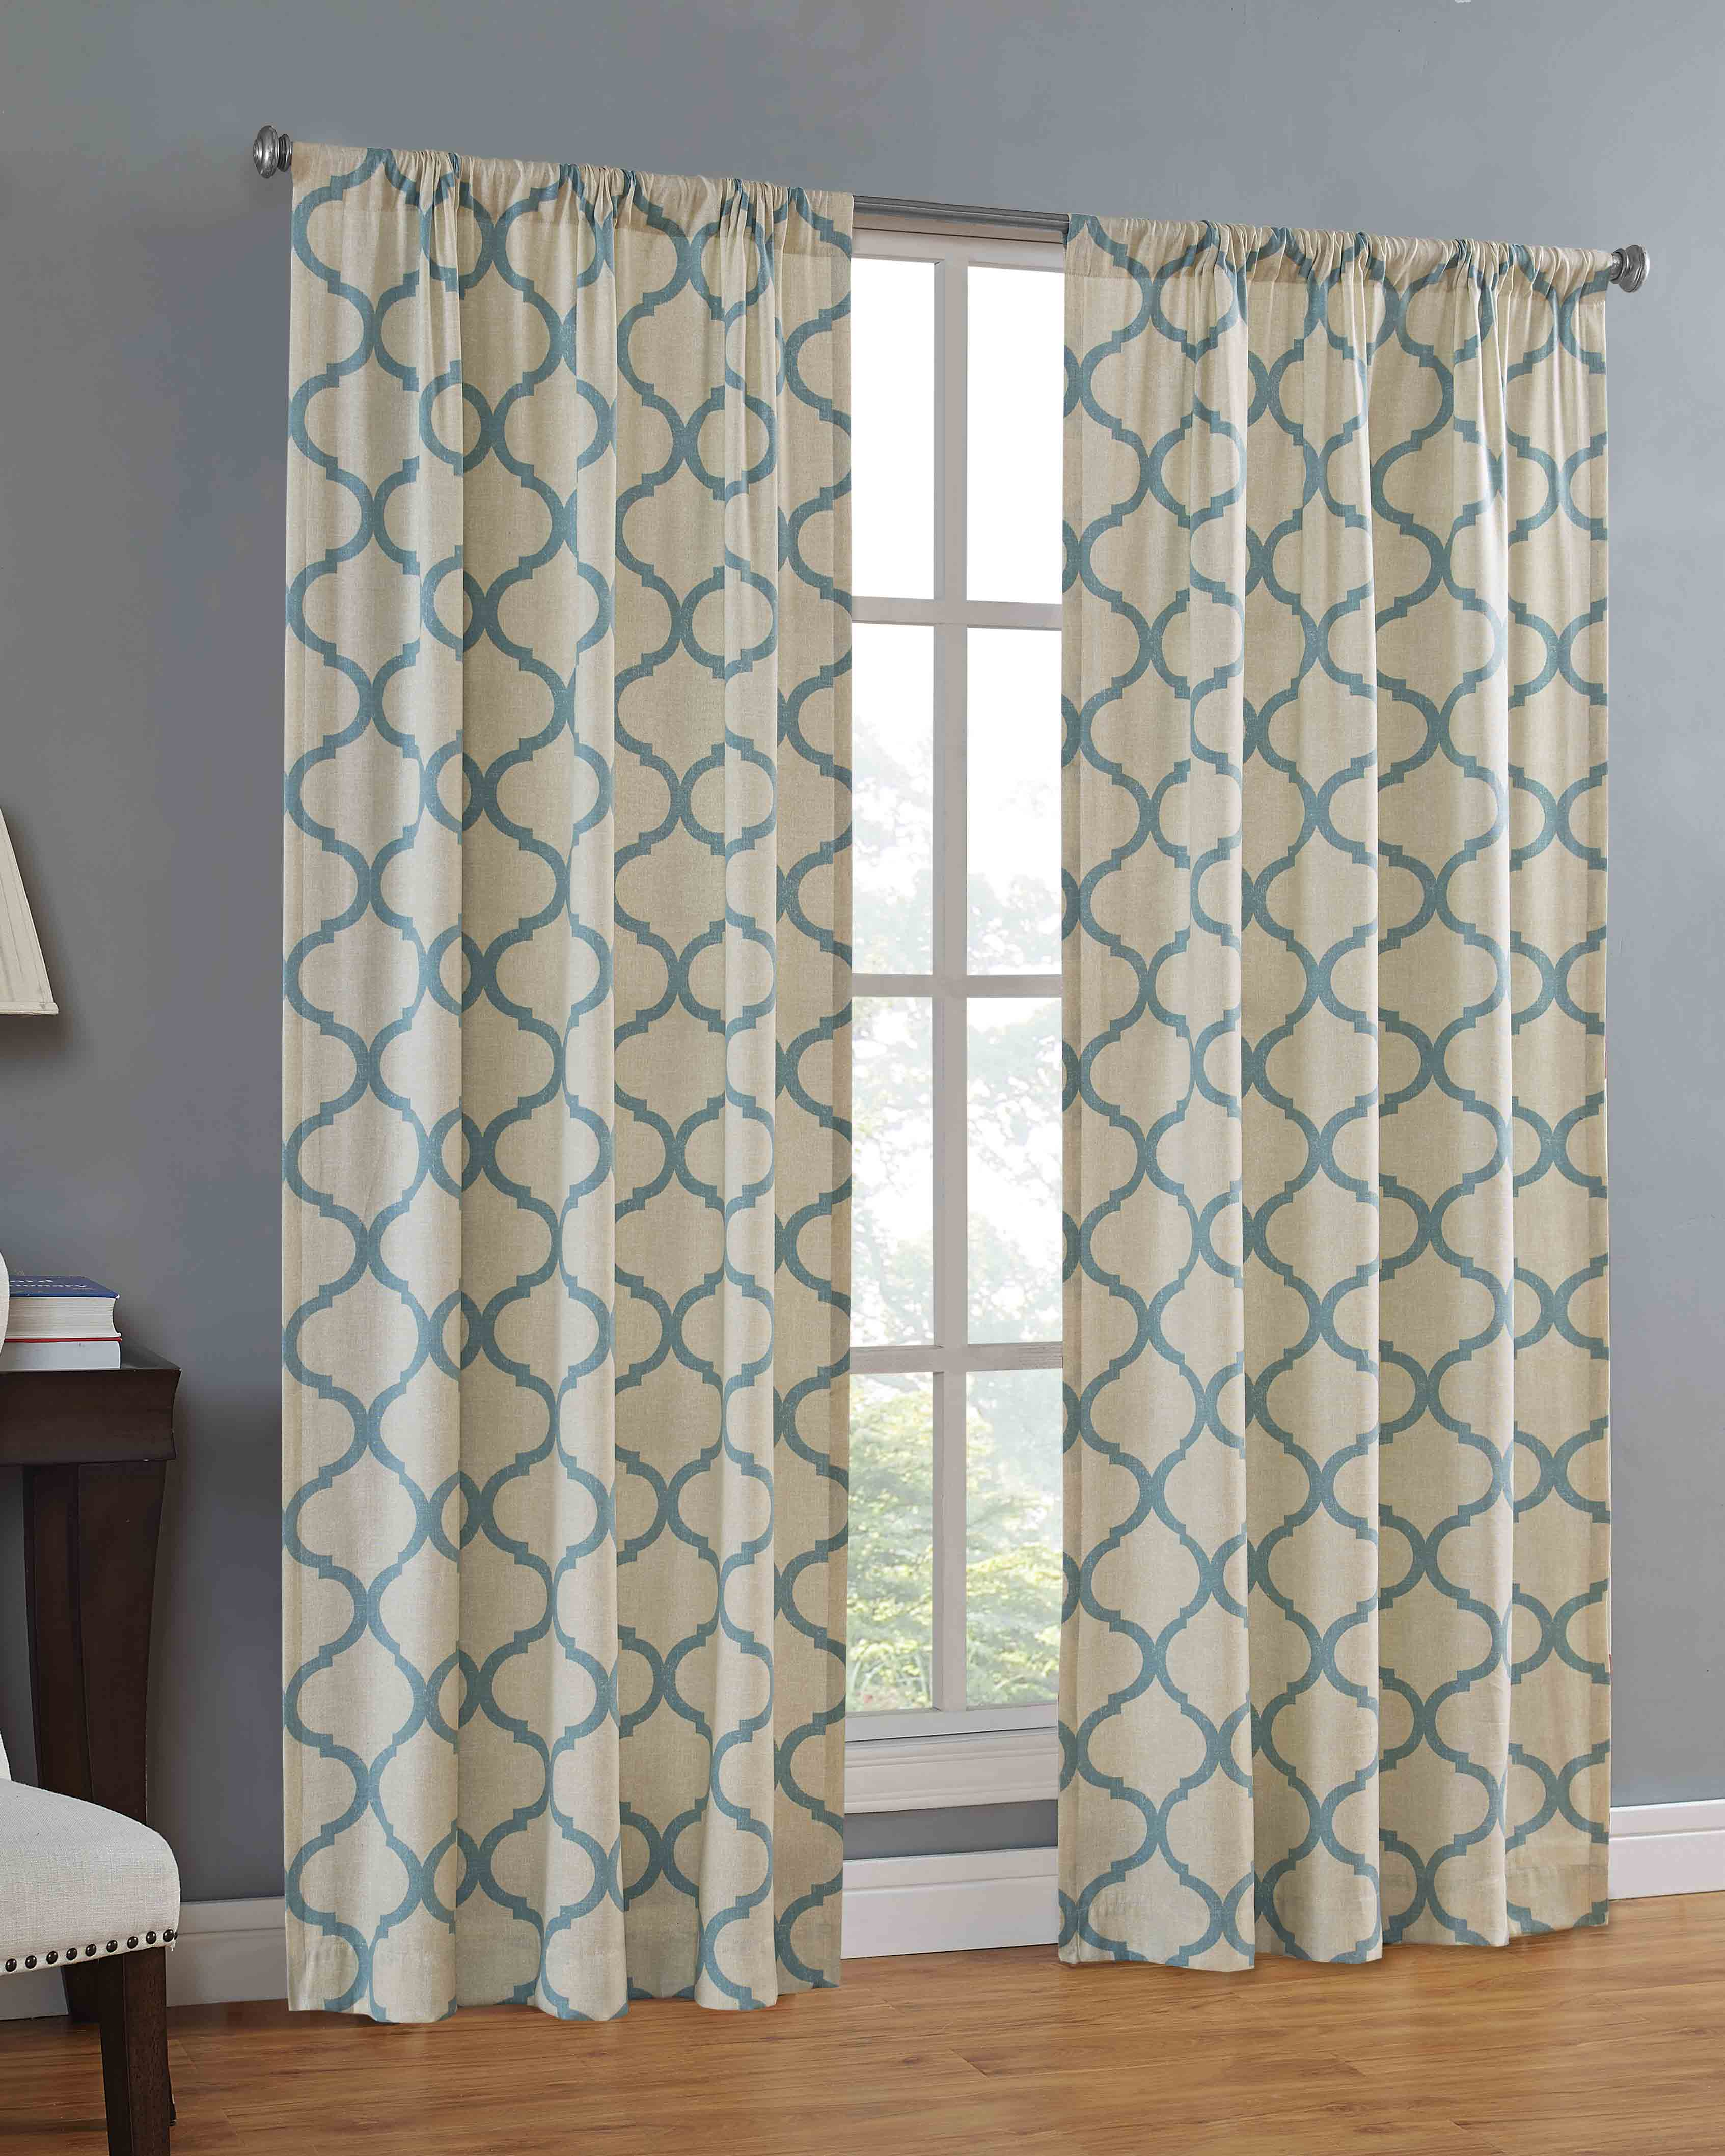 Mainstays Canvas Ironwork Curtain Panel by Keeco